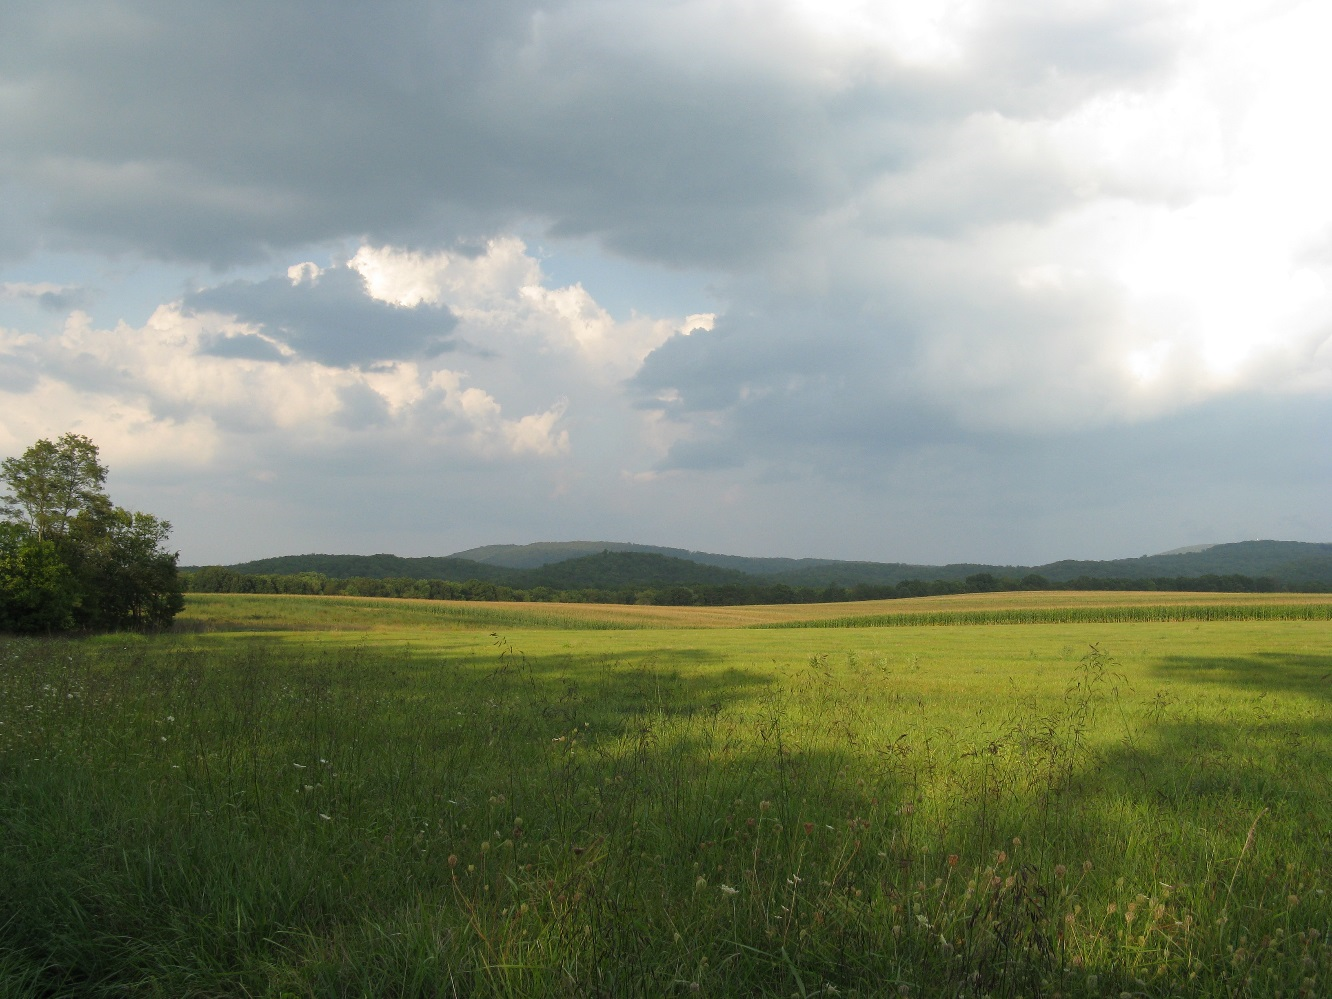 The South Branch River Valley